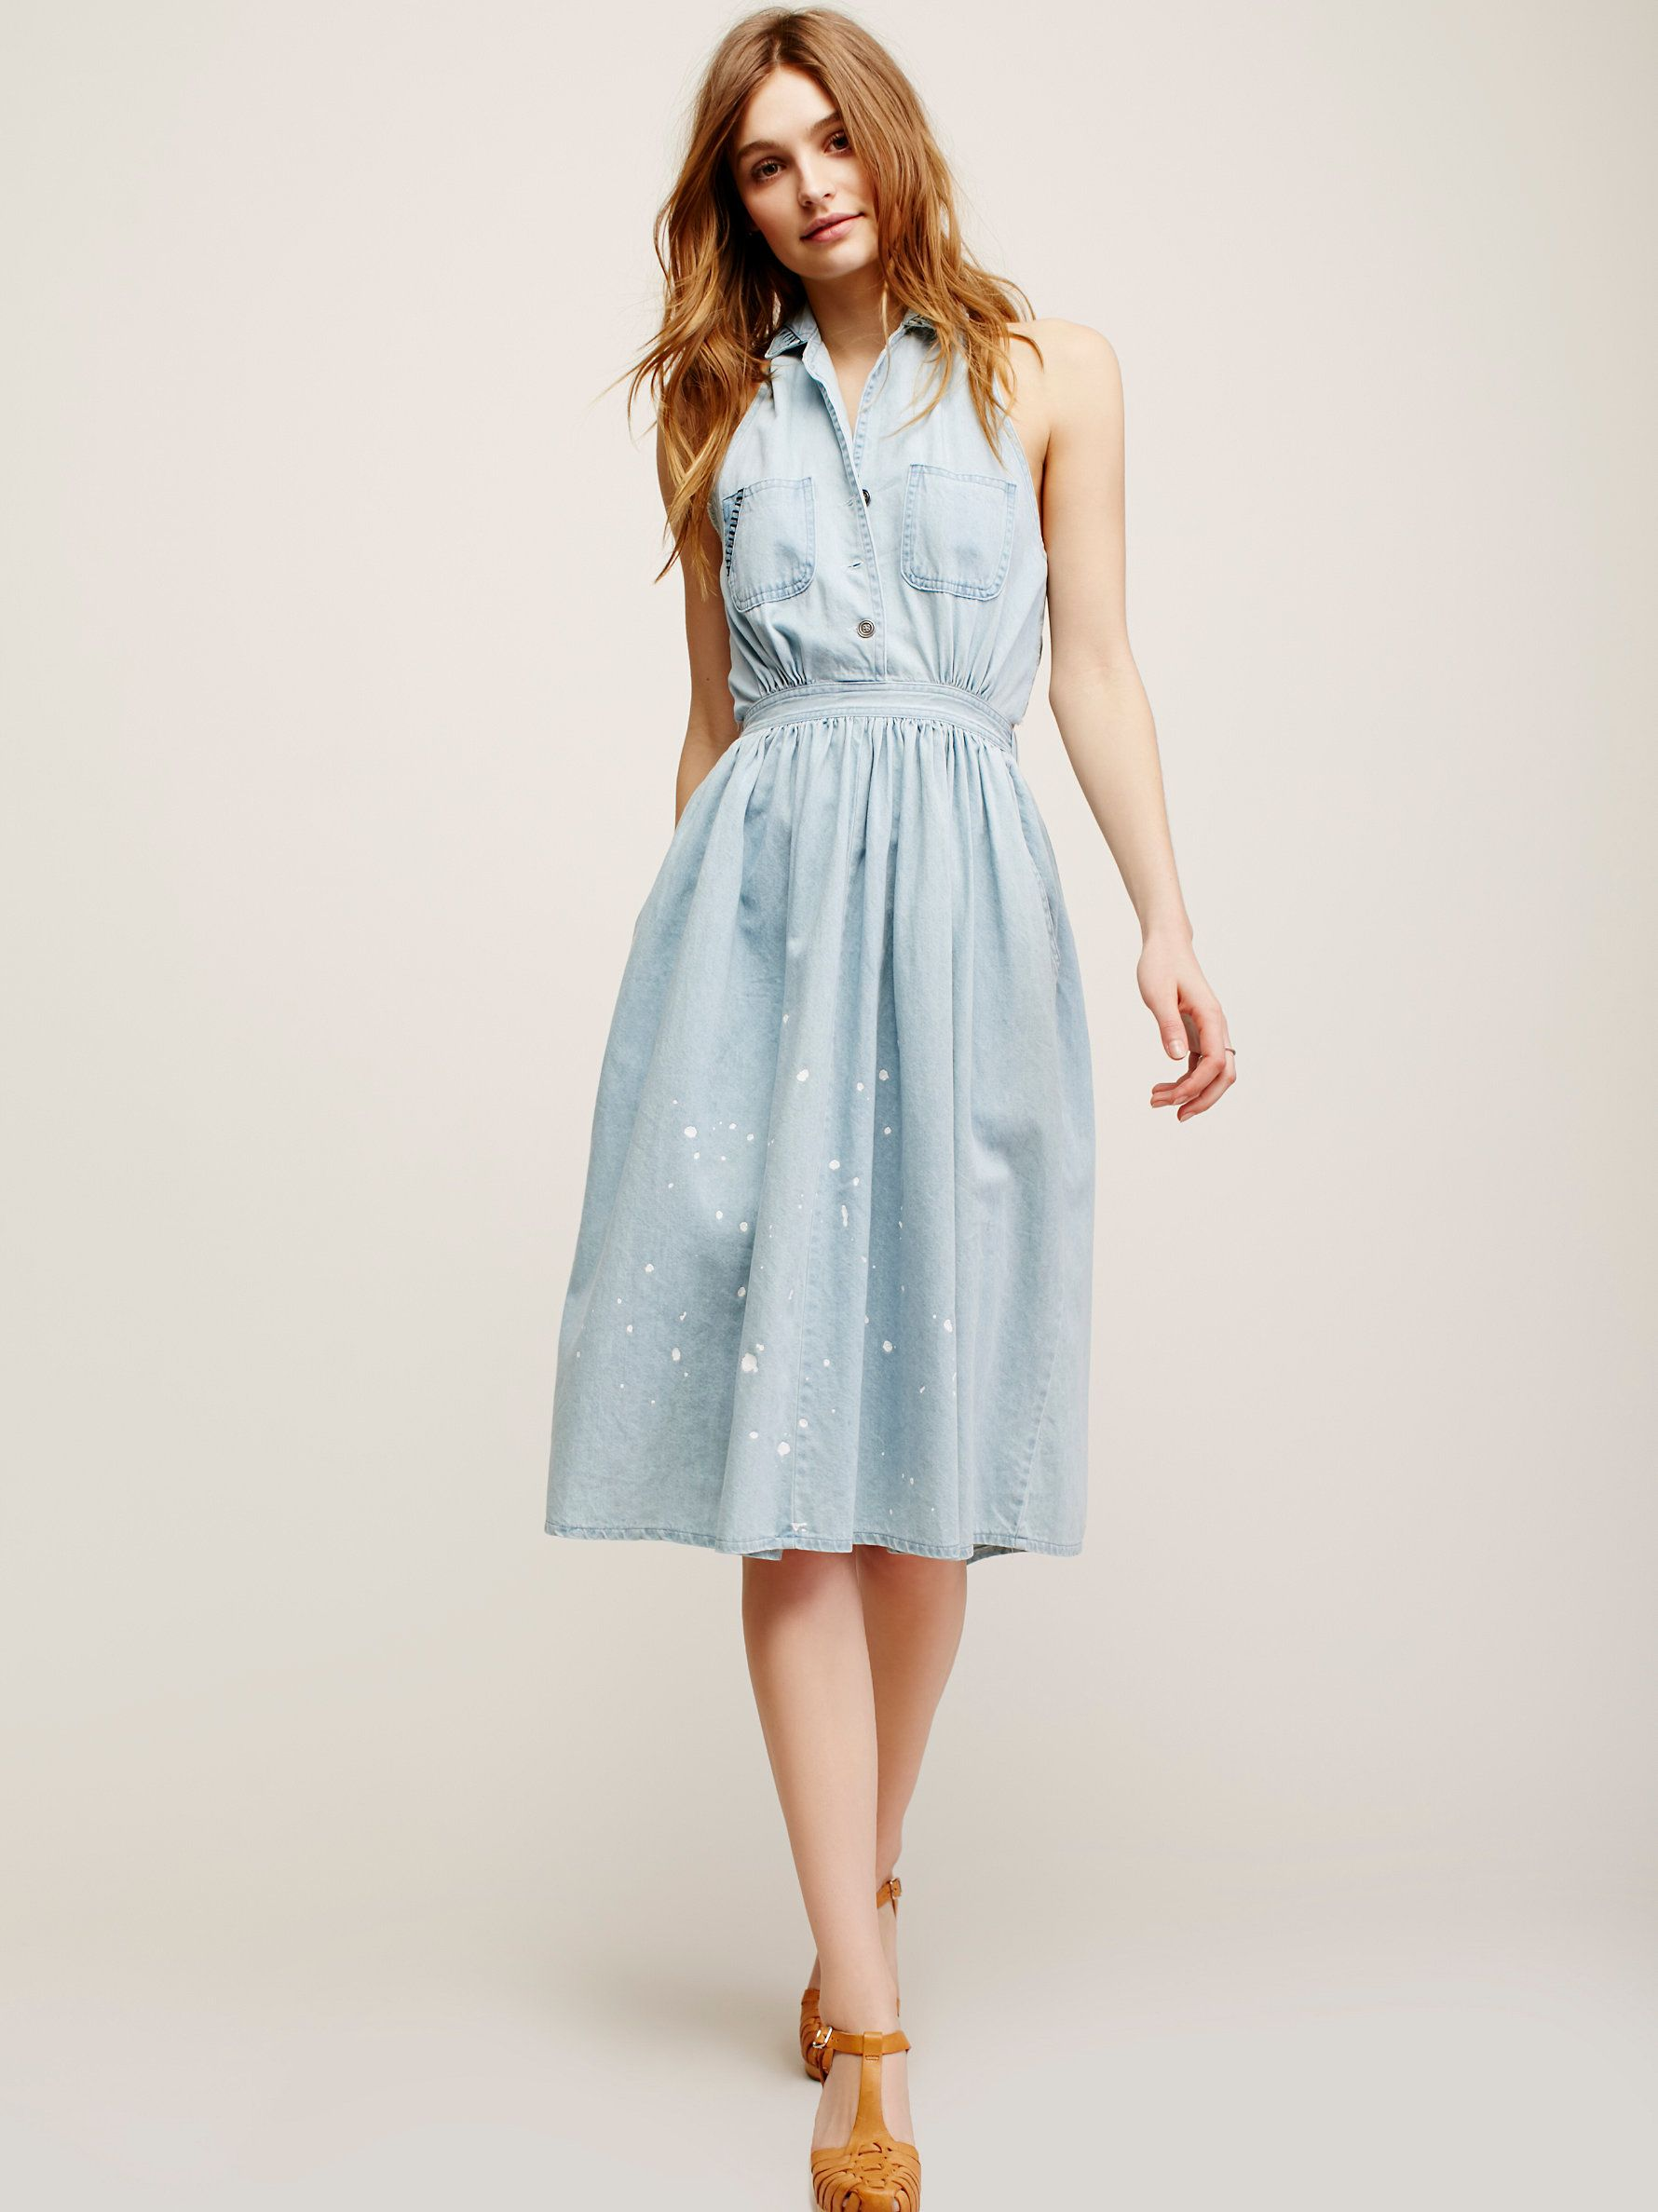 St Bleu Swoon Dress | soft and floral things | Pinterest | Ponerse ...